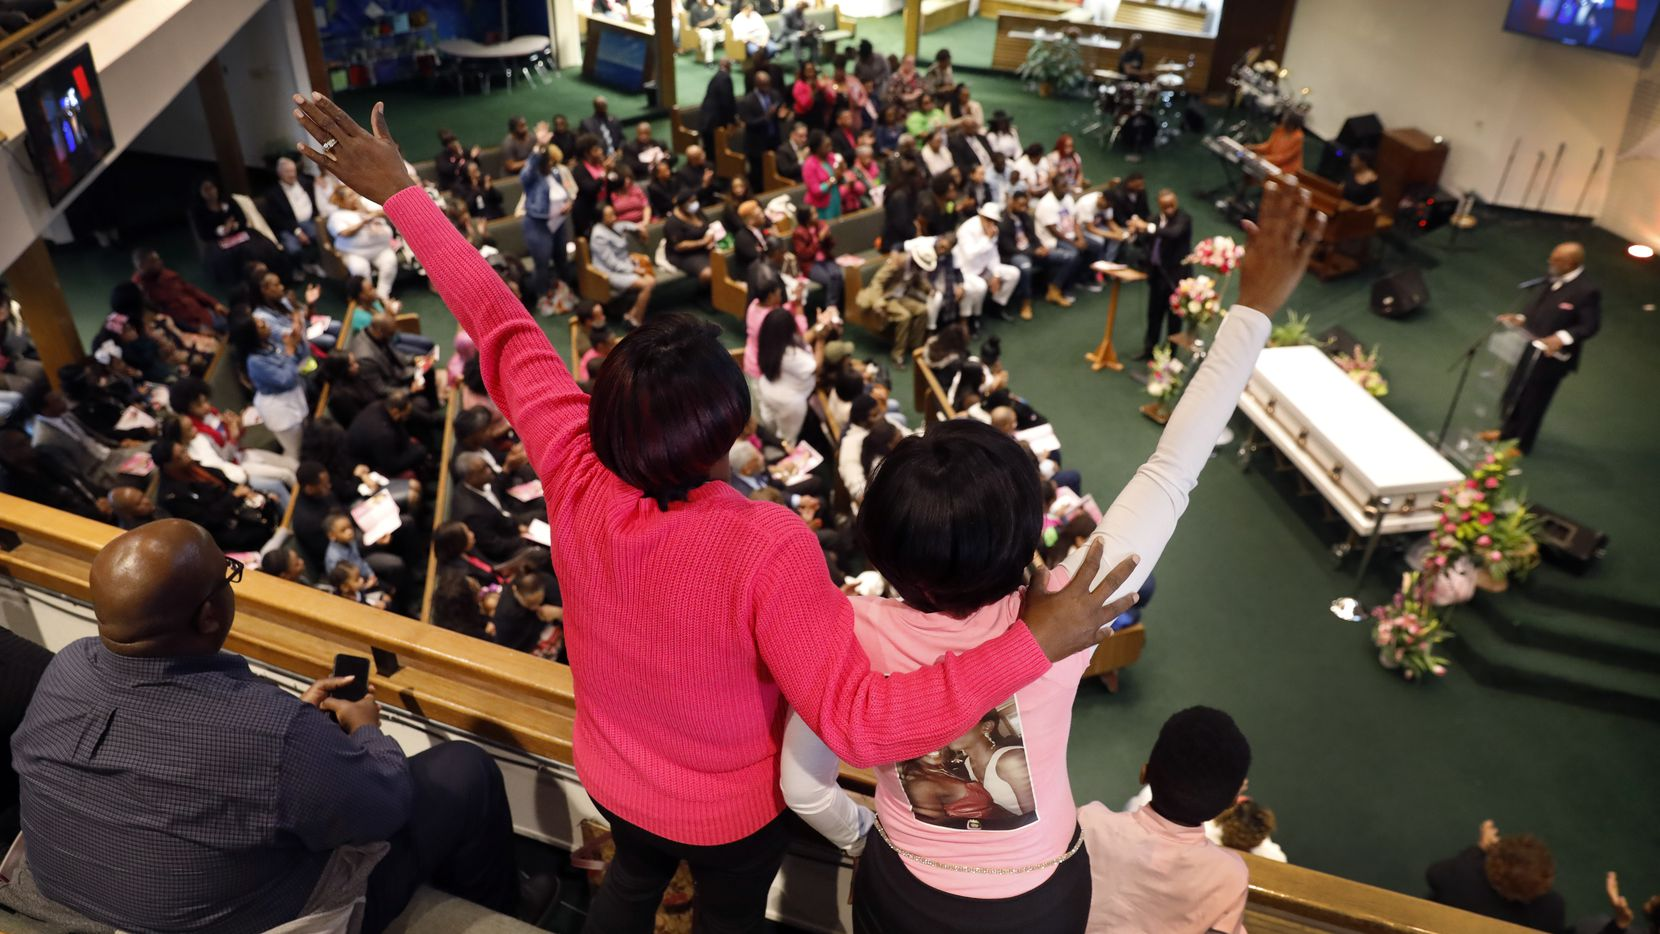 Mourners sing along during a funeral service for LaTiffiney Rodgers, 26, at the CrossRoads Covenant Church in DeSoto on Feb. 22. Police say Rodgers was killed by the father of her children, Johnnie Palmore.